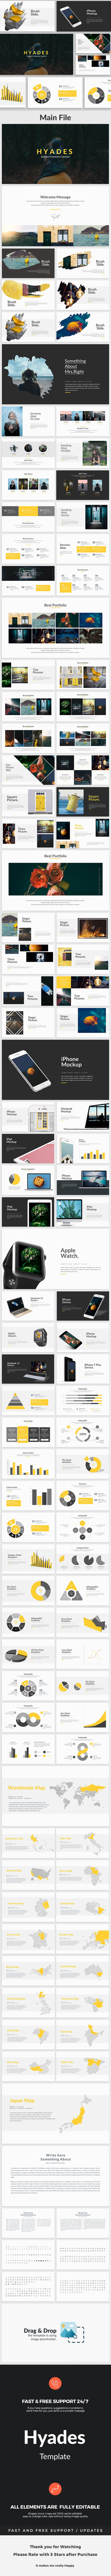 Hyades  Creative Powerpoint Template — Powerpoint PPT #investor presentation #info graphics • Download ➝ https://graphicriver.net/item/hyades-creative-powerpoint-template/19256769?ref=pxcr